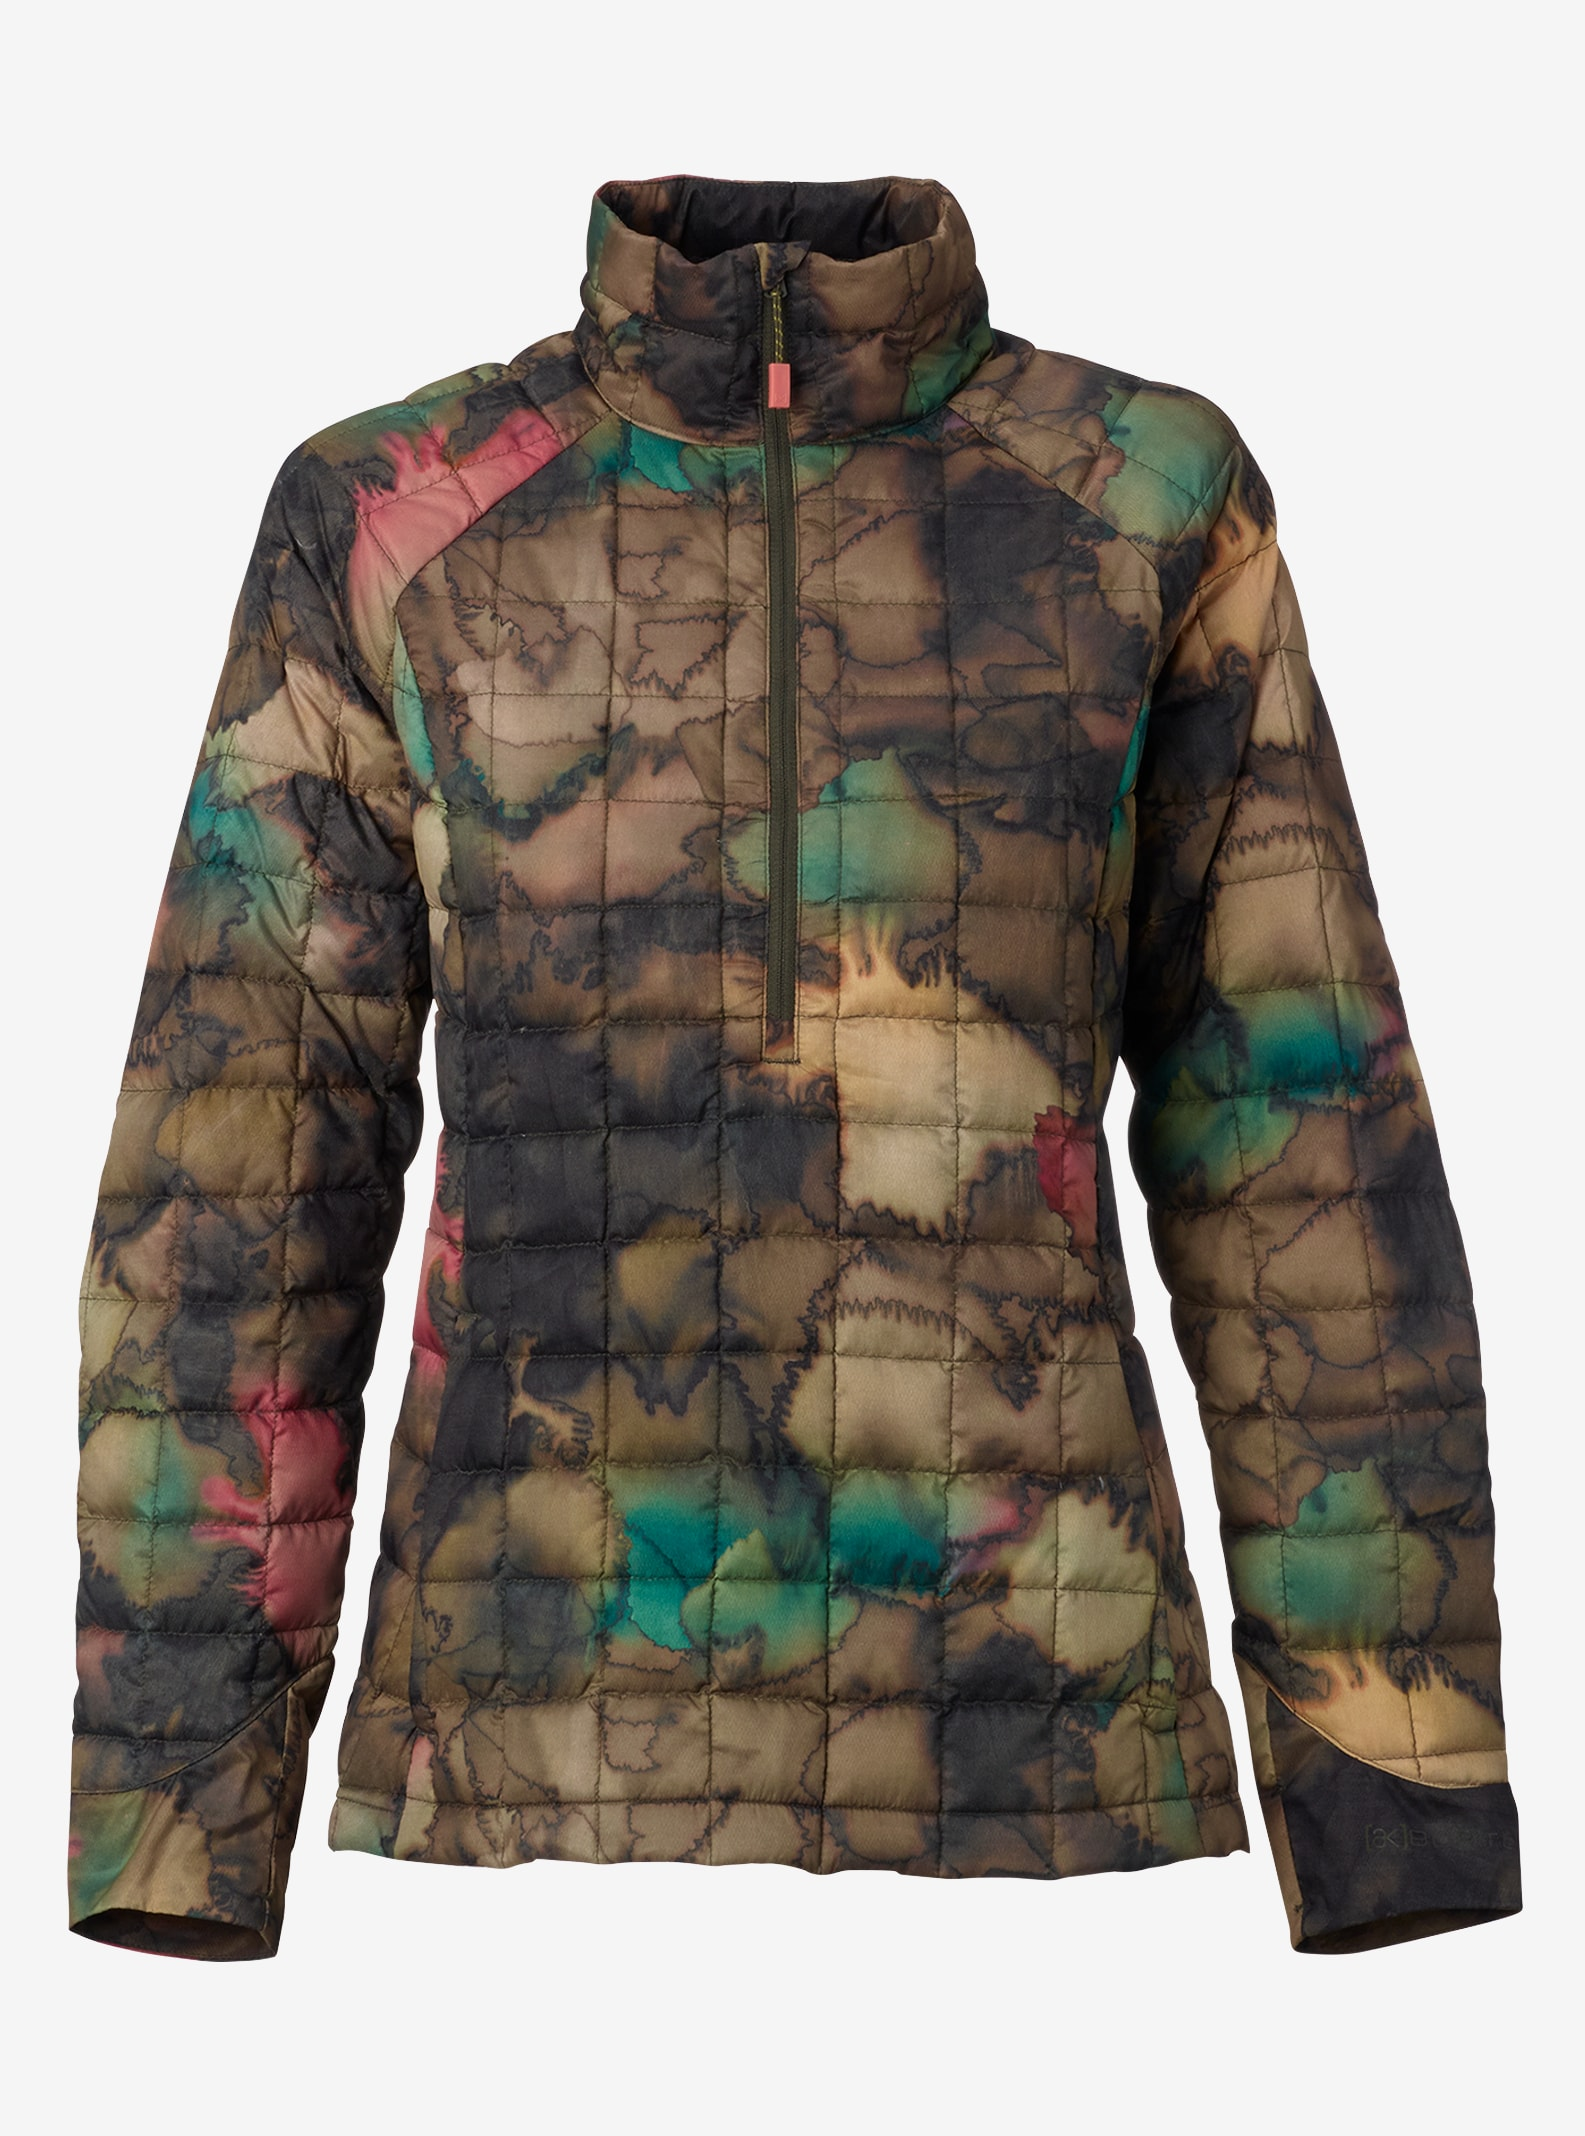 Women's Burton [ak] Baker Down LT Jacket shown in Tea Camo